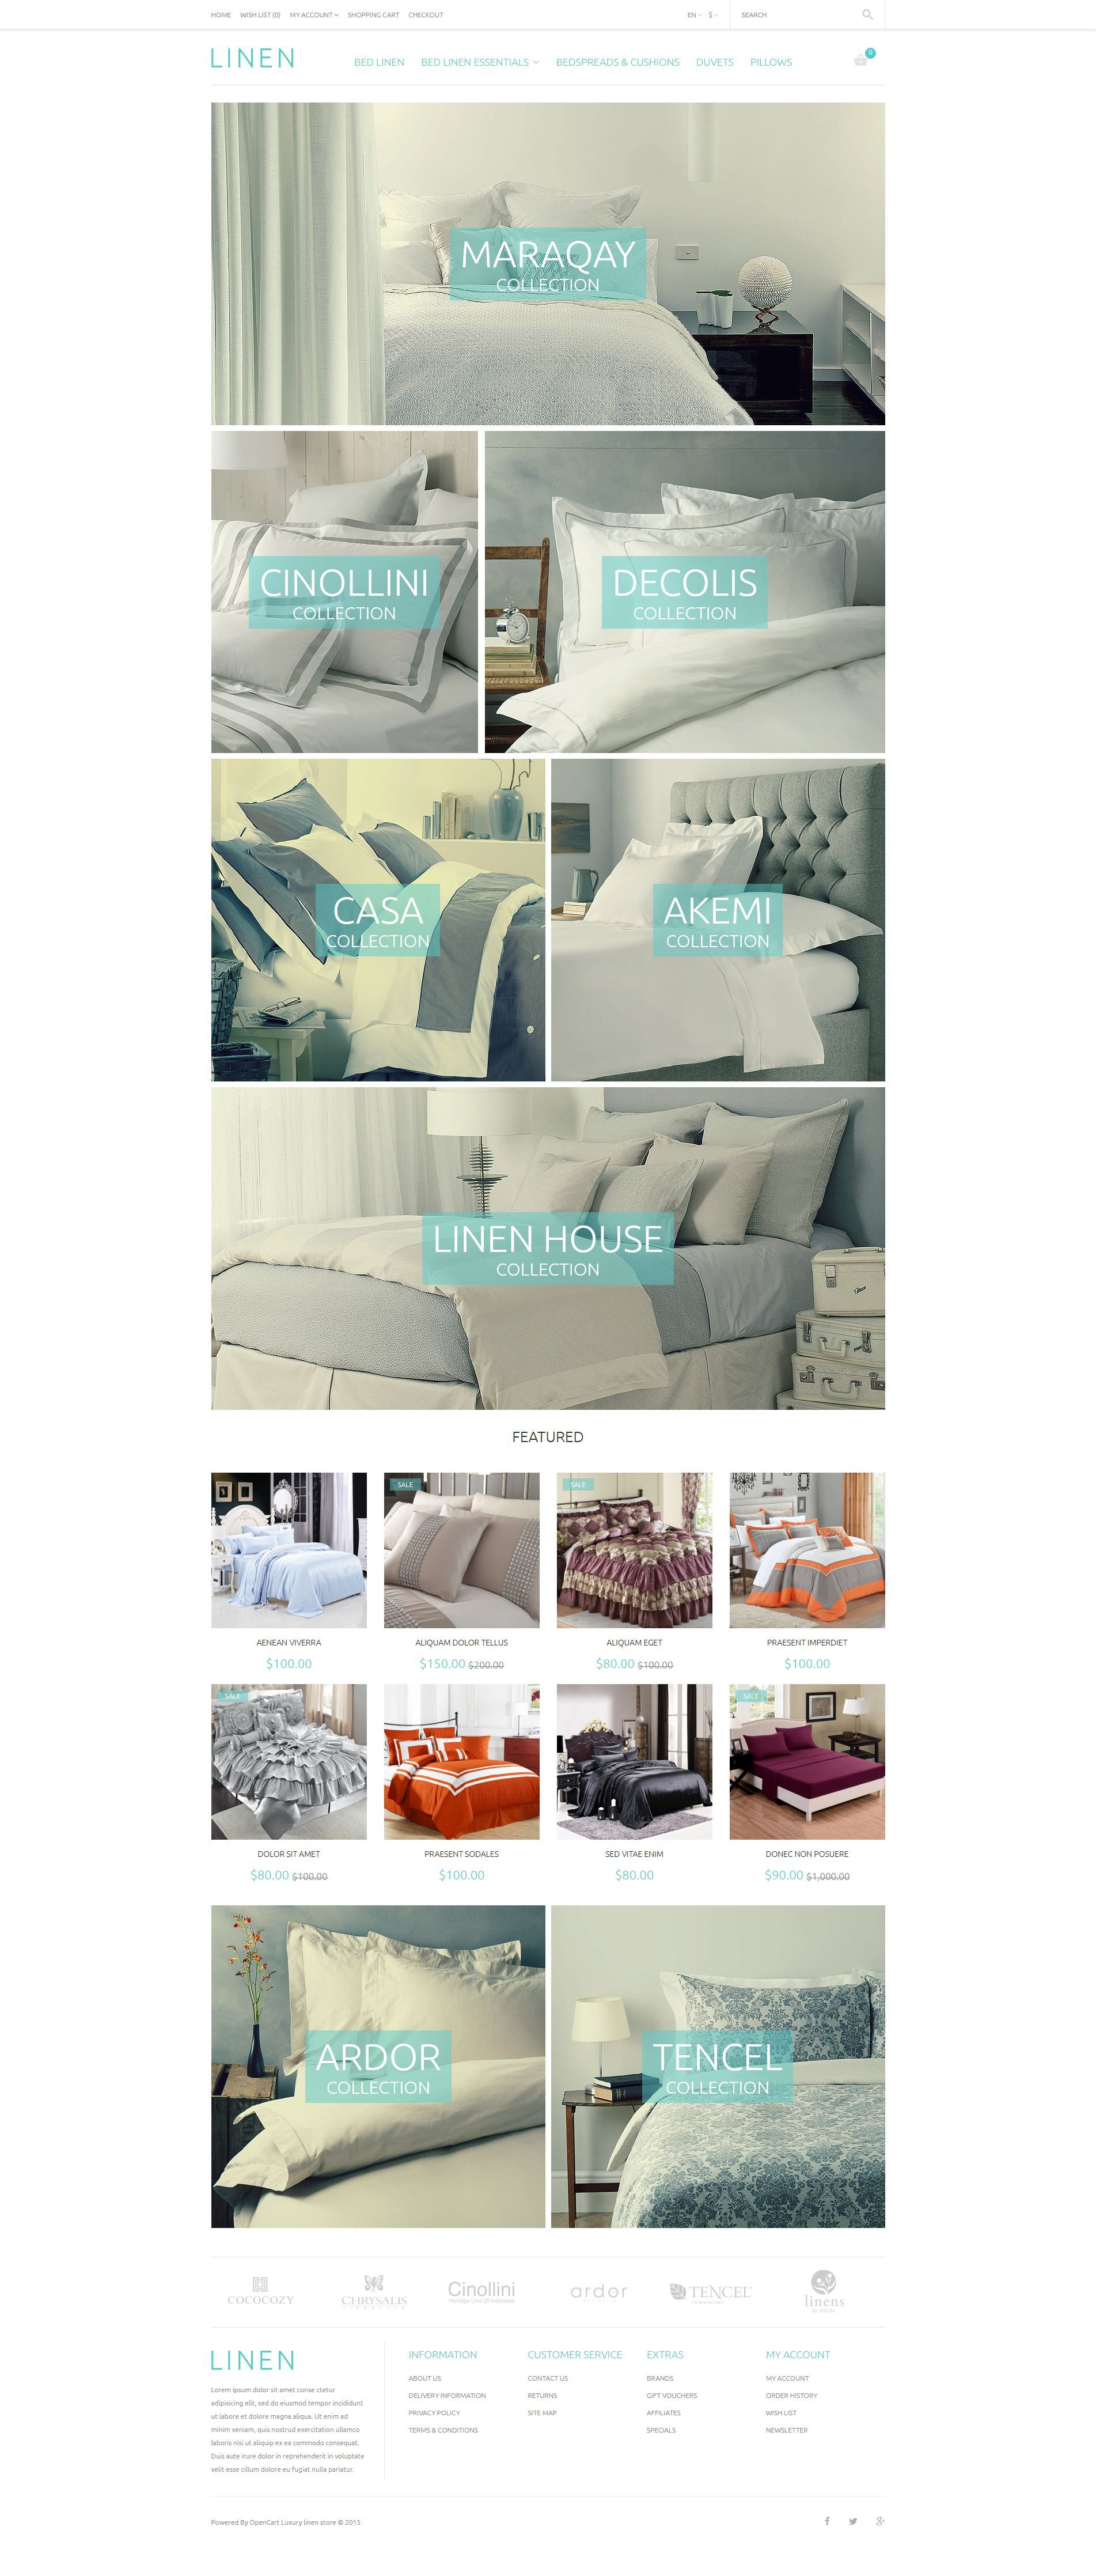 The Luxlinen Luxury Bed OpenCart Design 54006, one of the best OpenCart templates of its kind (fashion, most popular), also known as luxlinen luxury bed OpenCart template, linen OpenCart template, duvet OpenCart template, covers OpenCart template, pillars OpenCart template, bedding OpenCart template, kitchen OpenCart template, bath OpenCart template, brand OpenCart template, silk OpenCart template, wool OpenCart template, syntetic and related with luxlinen luxury bed, linen, duvet, covers, pillars, bedding, kitchen, bath, brand, silk, wool, syntetic, etc.